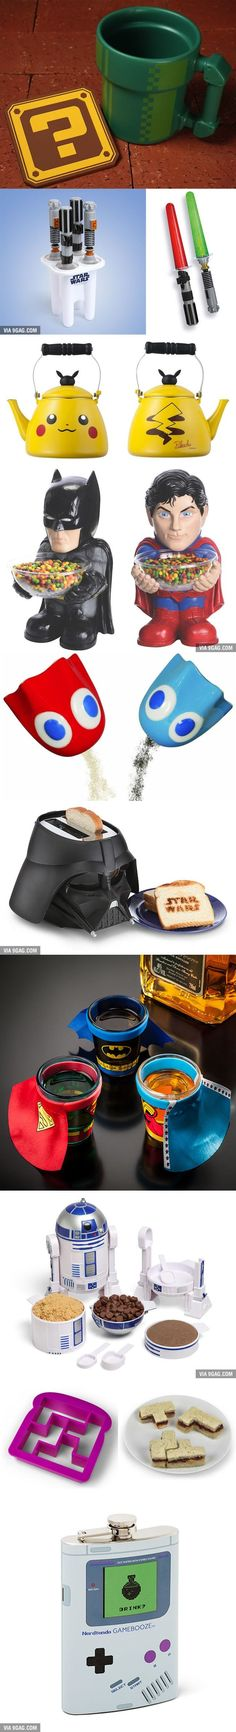 10 Things Geek Must Have In Their Kitchen. - 9GAG - we were totally drooling over these with my fiancee :D